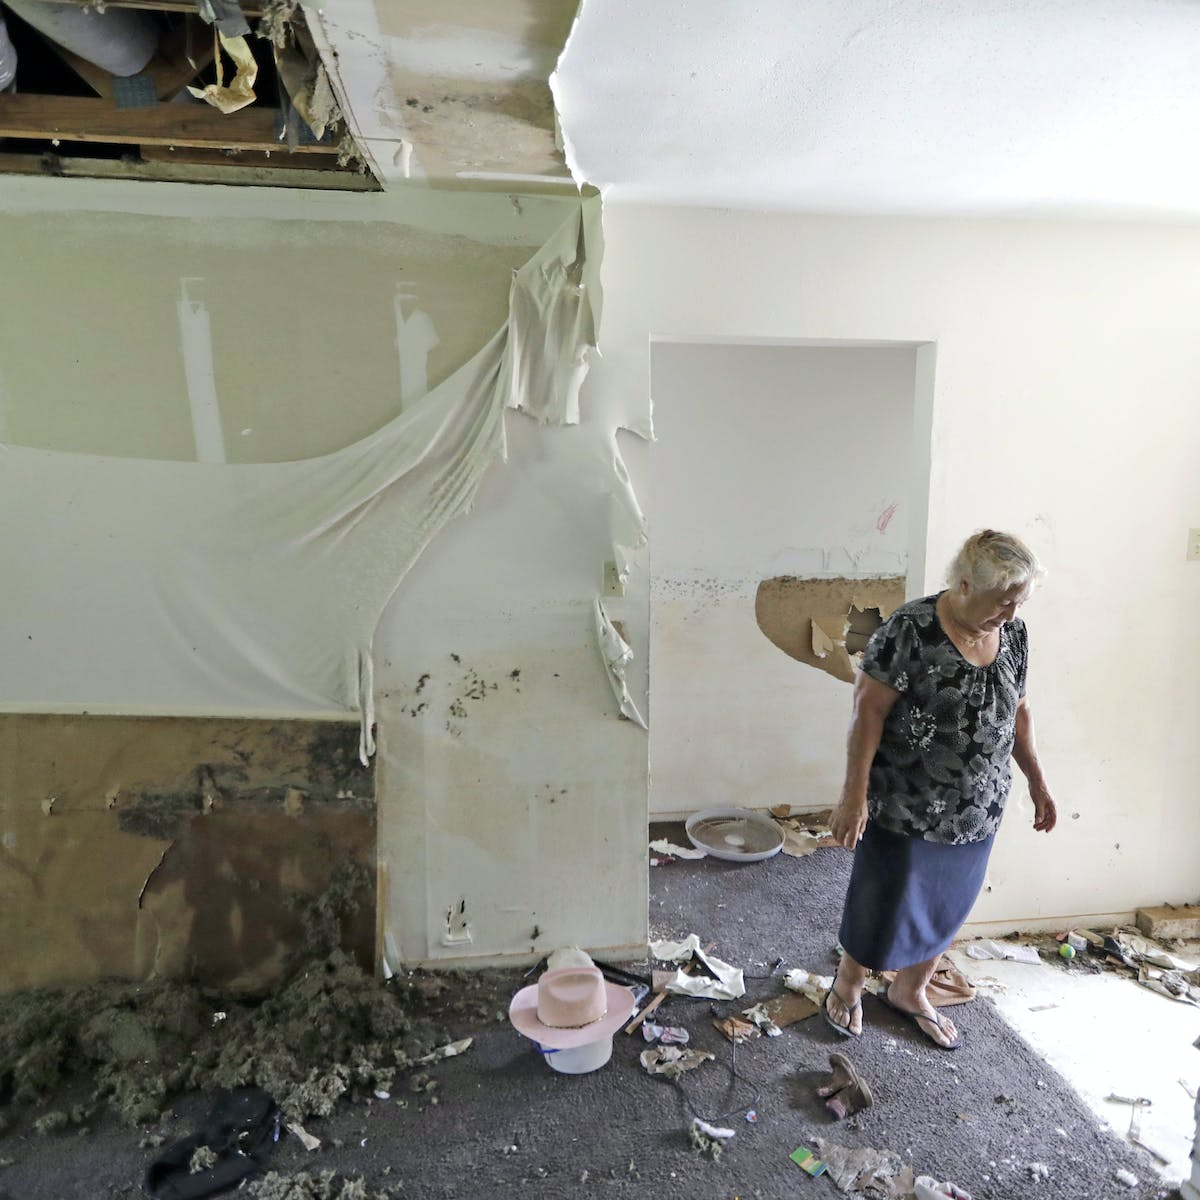 Beyond bleach: Mold a long-term problem after flooding and disasters